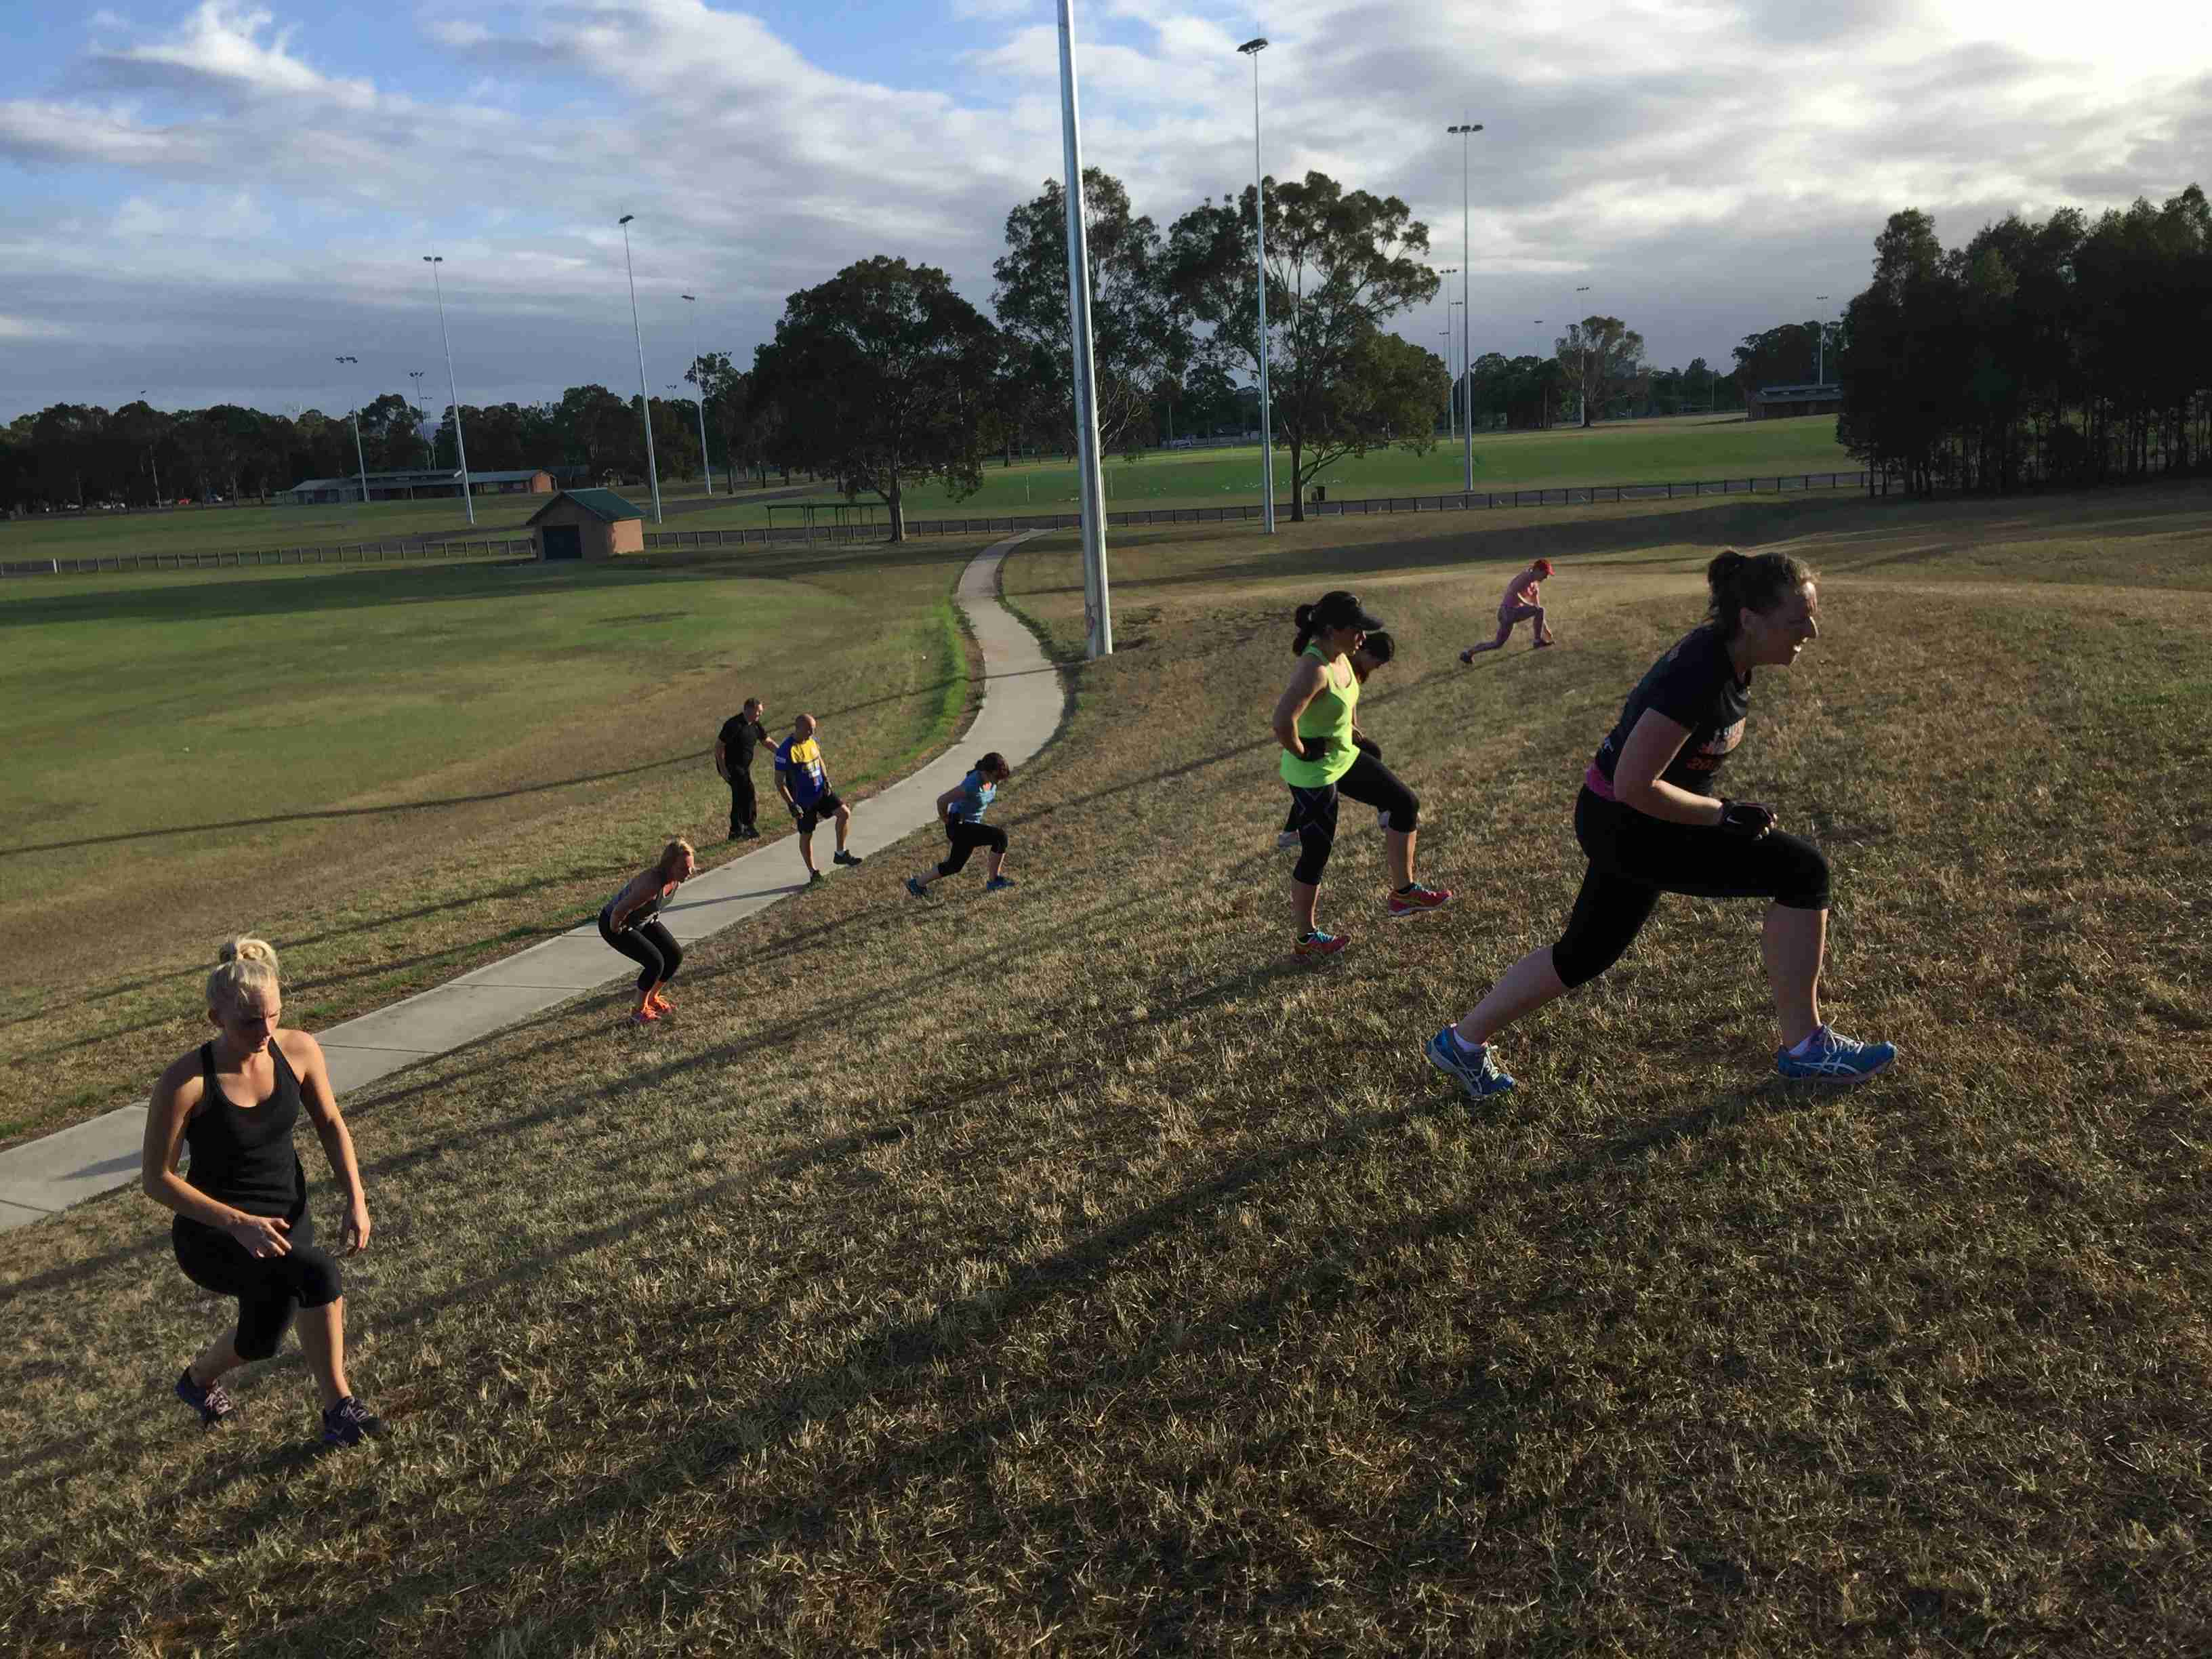 bootcamp penrith, penrith bootcamp, boot camp penrith, penrith boot camp